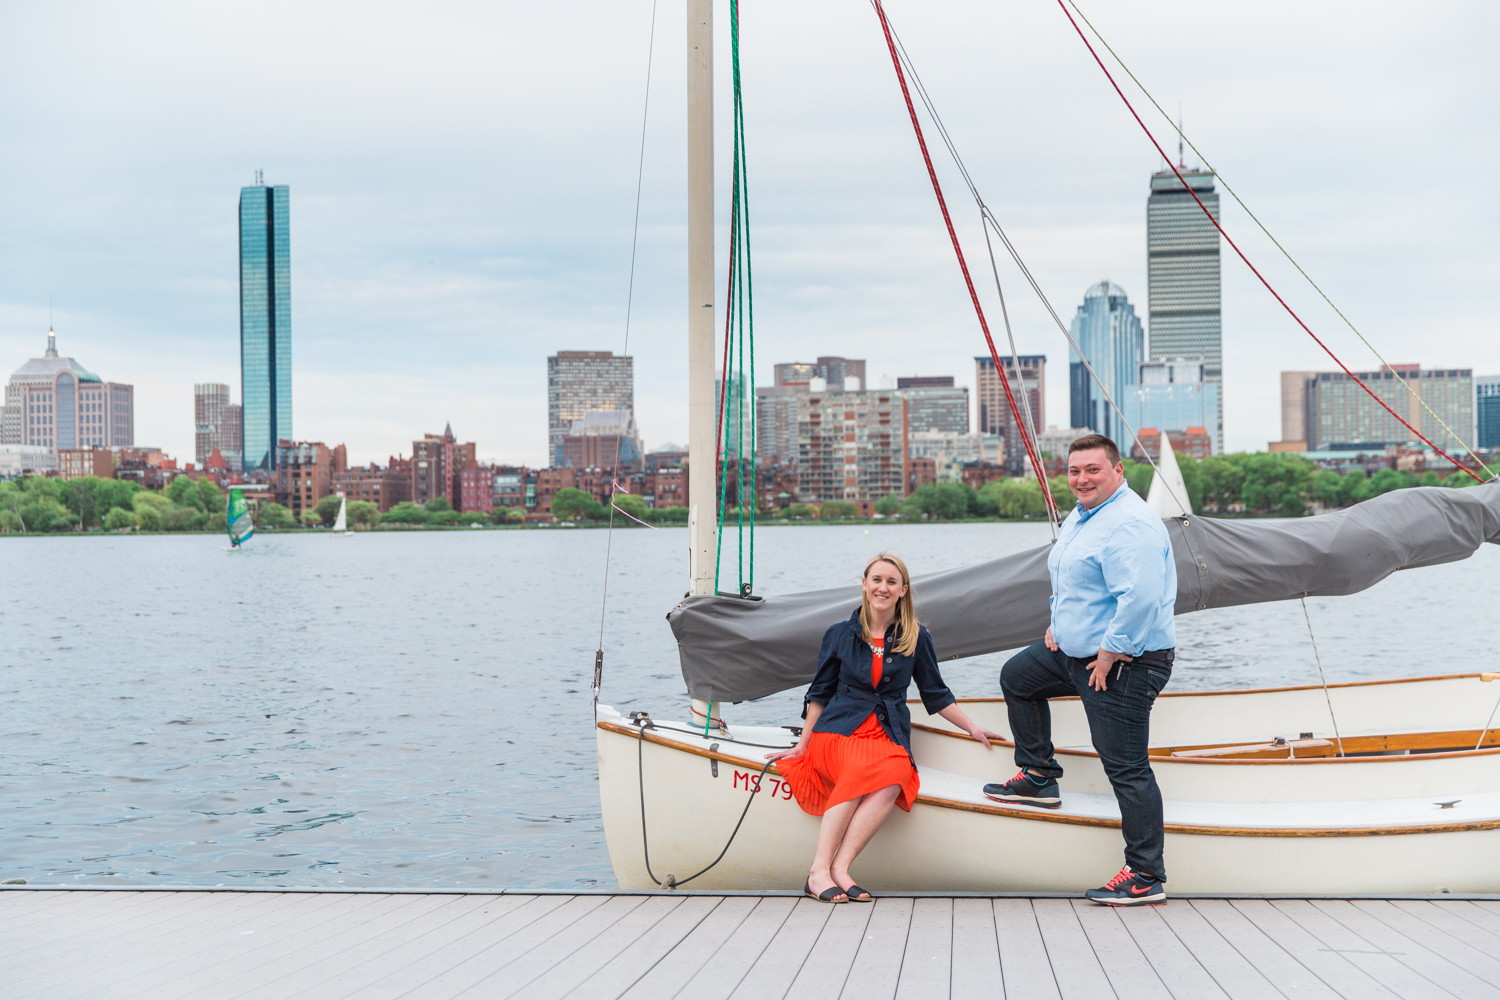 harvard-art-museum-engagement-photography-session-22